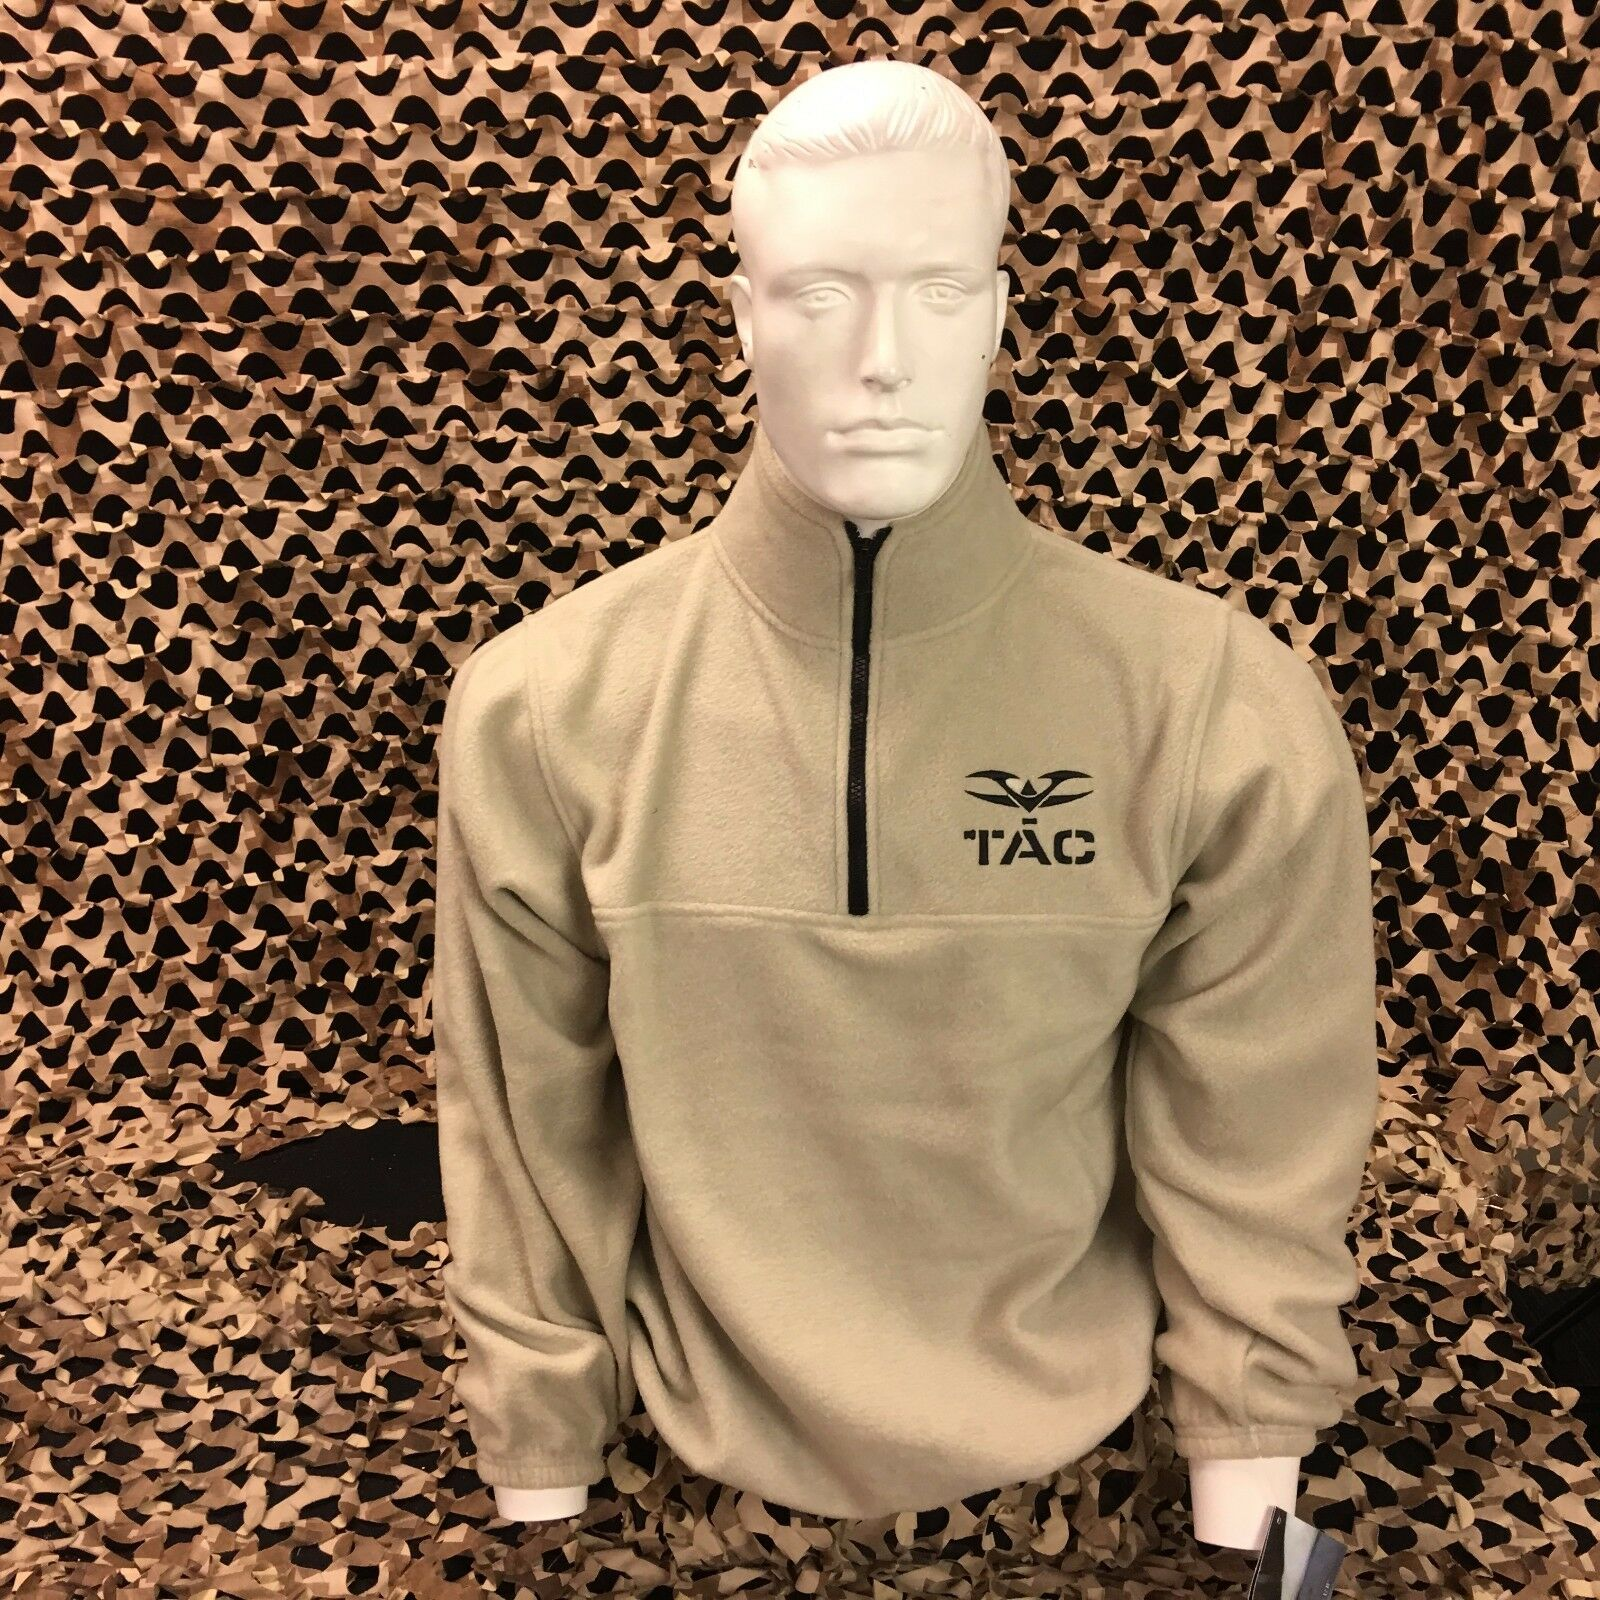 NEW  Valken Fleece Collared Sweatshirt - Tan - Small  online discount